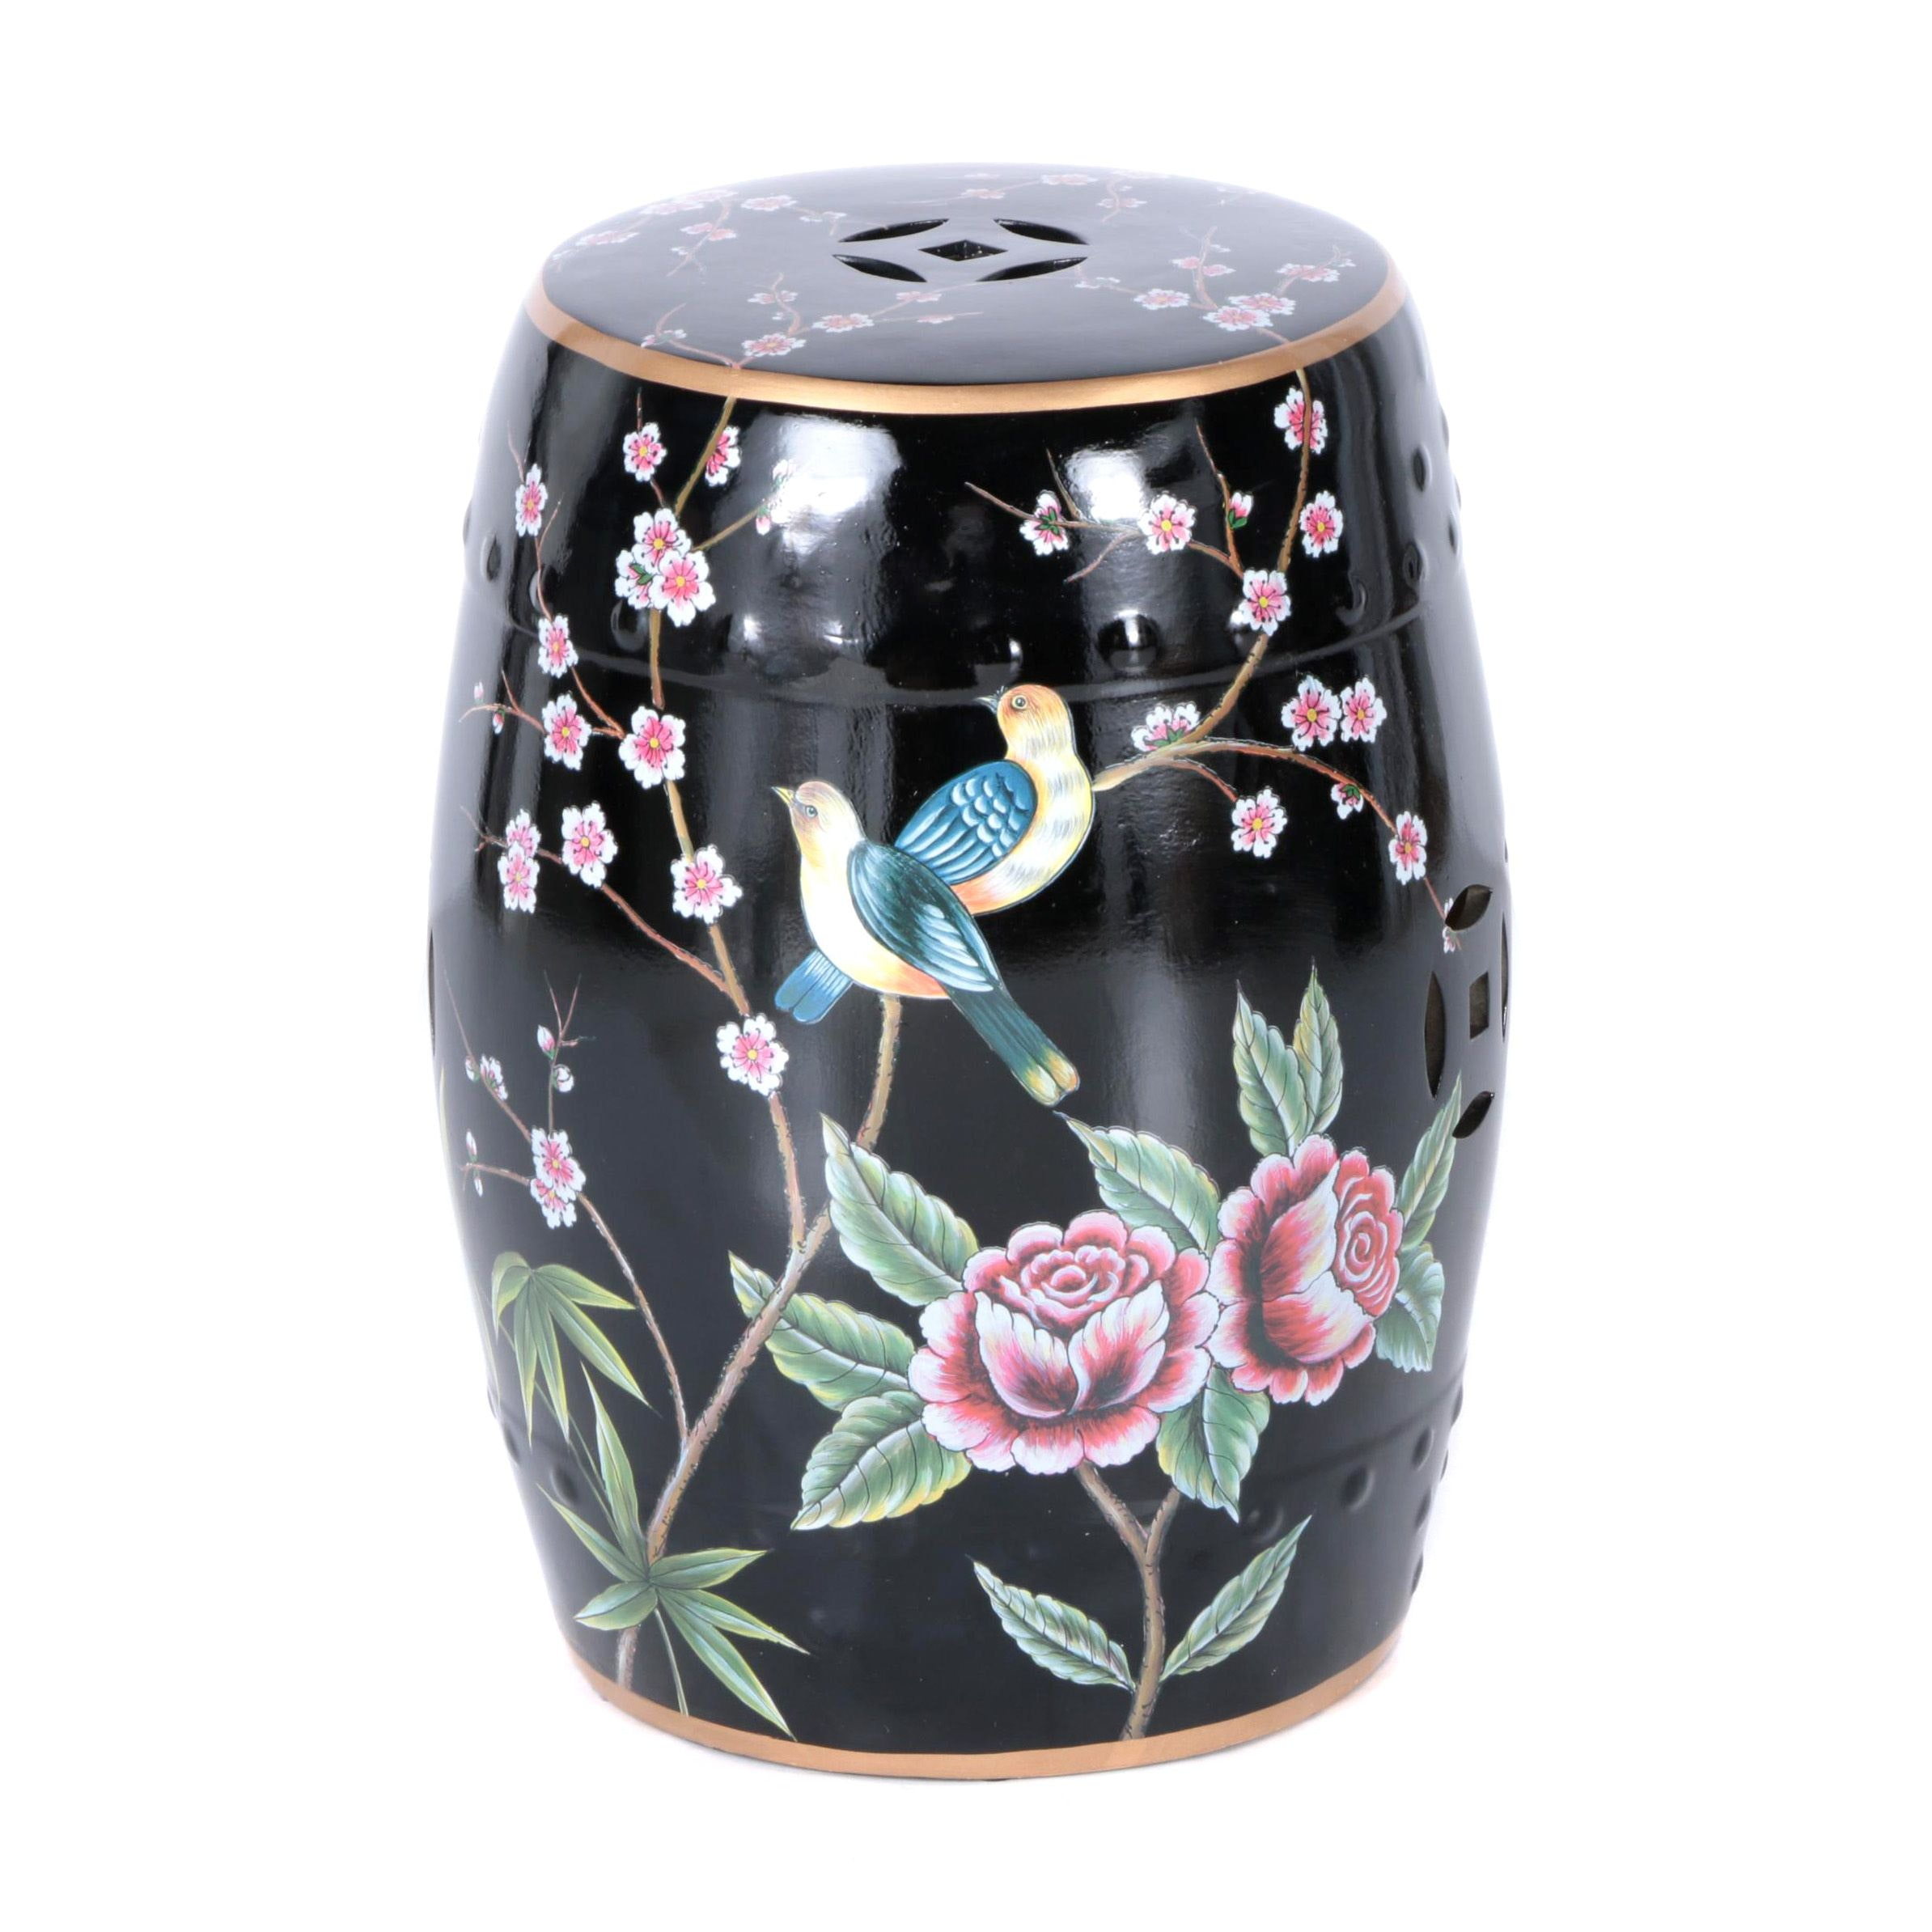 Floral Themed Black Ceramic Garden Stool